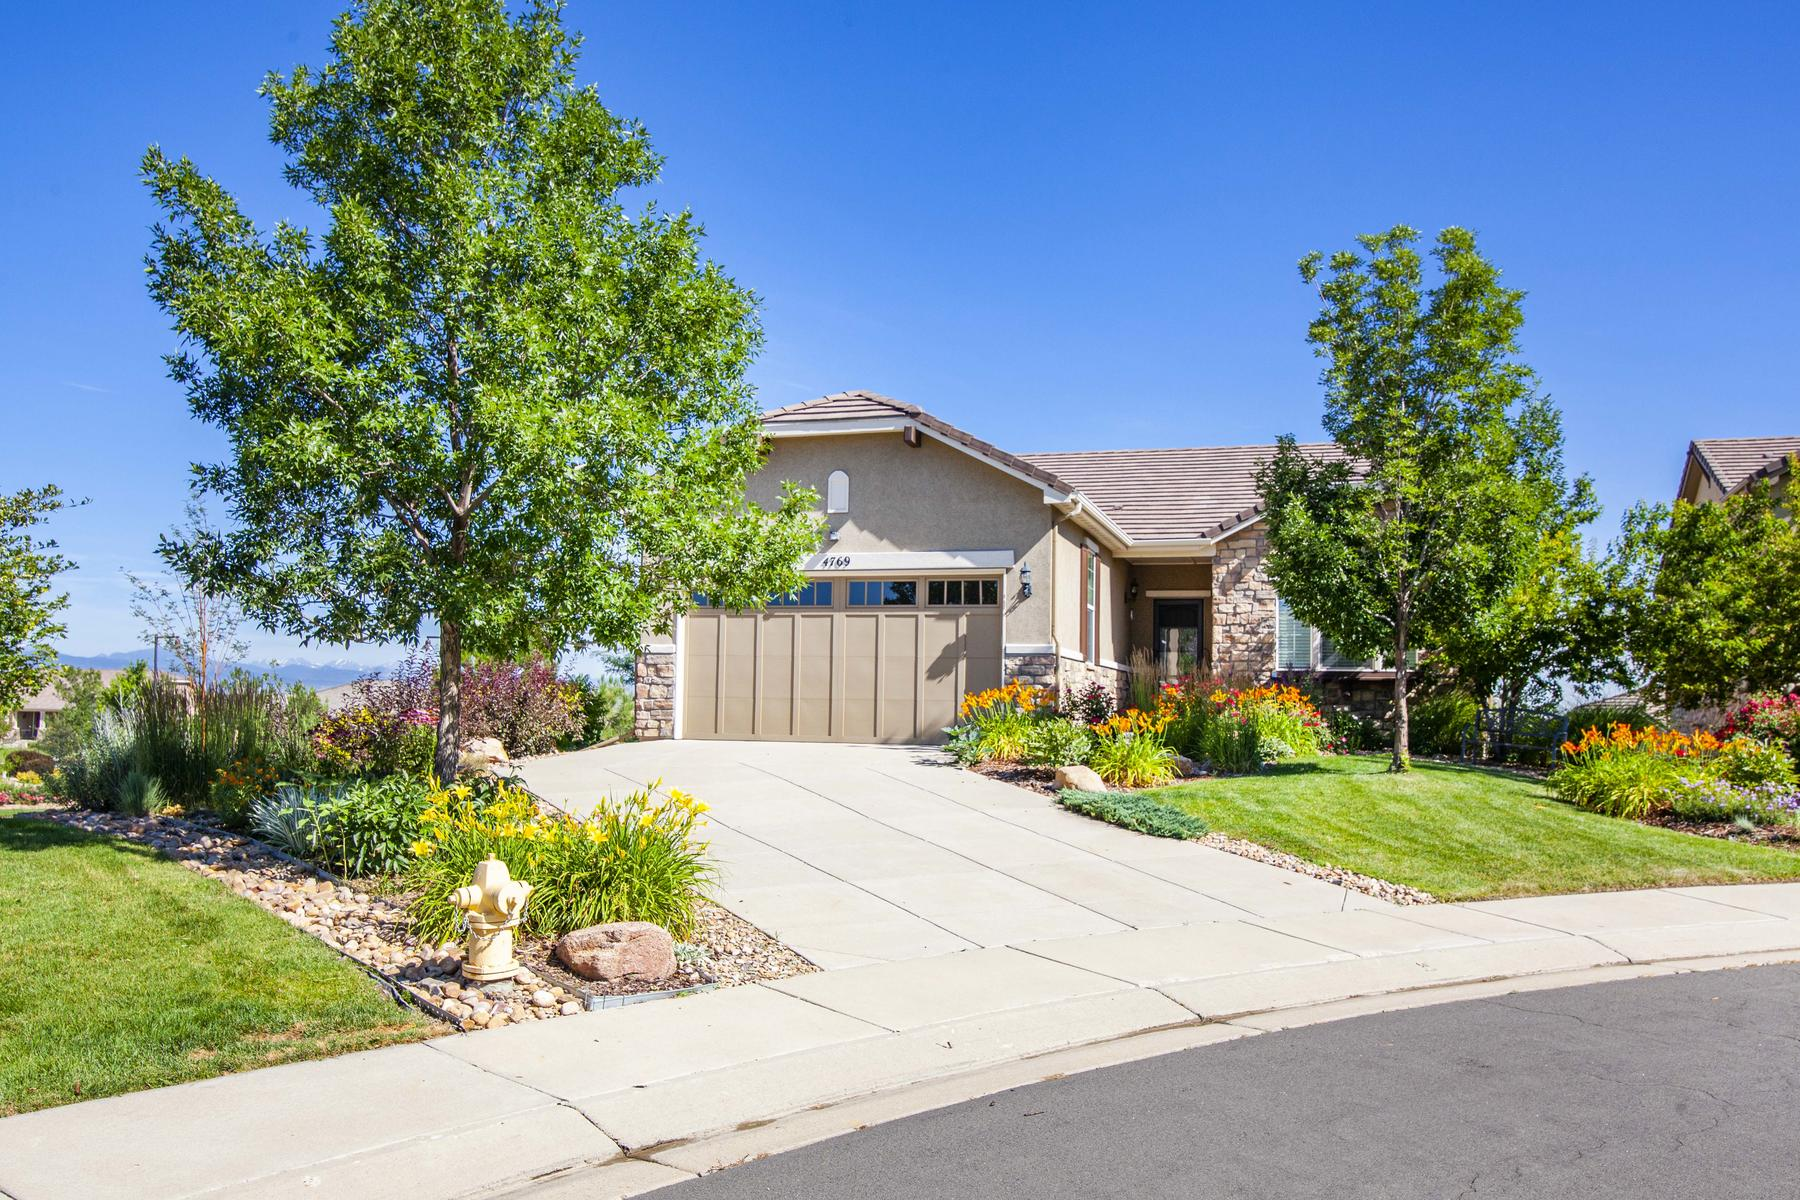 Single Family Homes for Sale at Panoramic Mountain Views 4769 Kismet Pl, Broomfield, Colorado 80023 United States